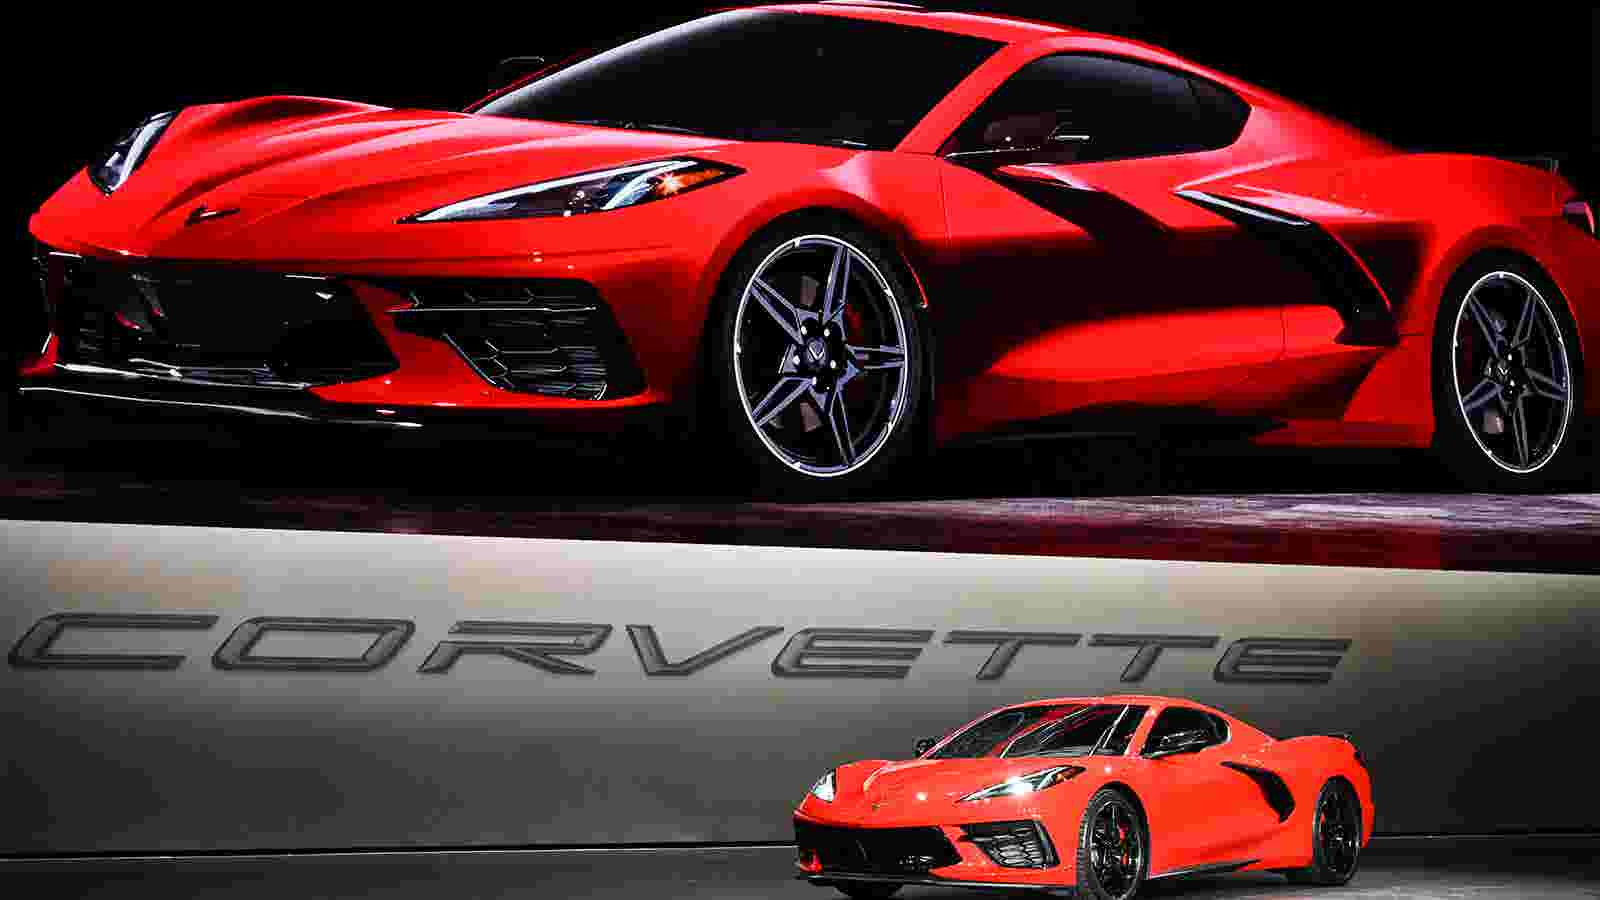 First Look: New mid-engine Corvette adds more muscle